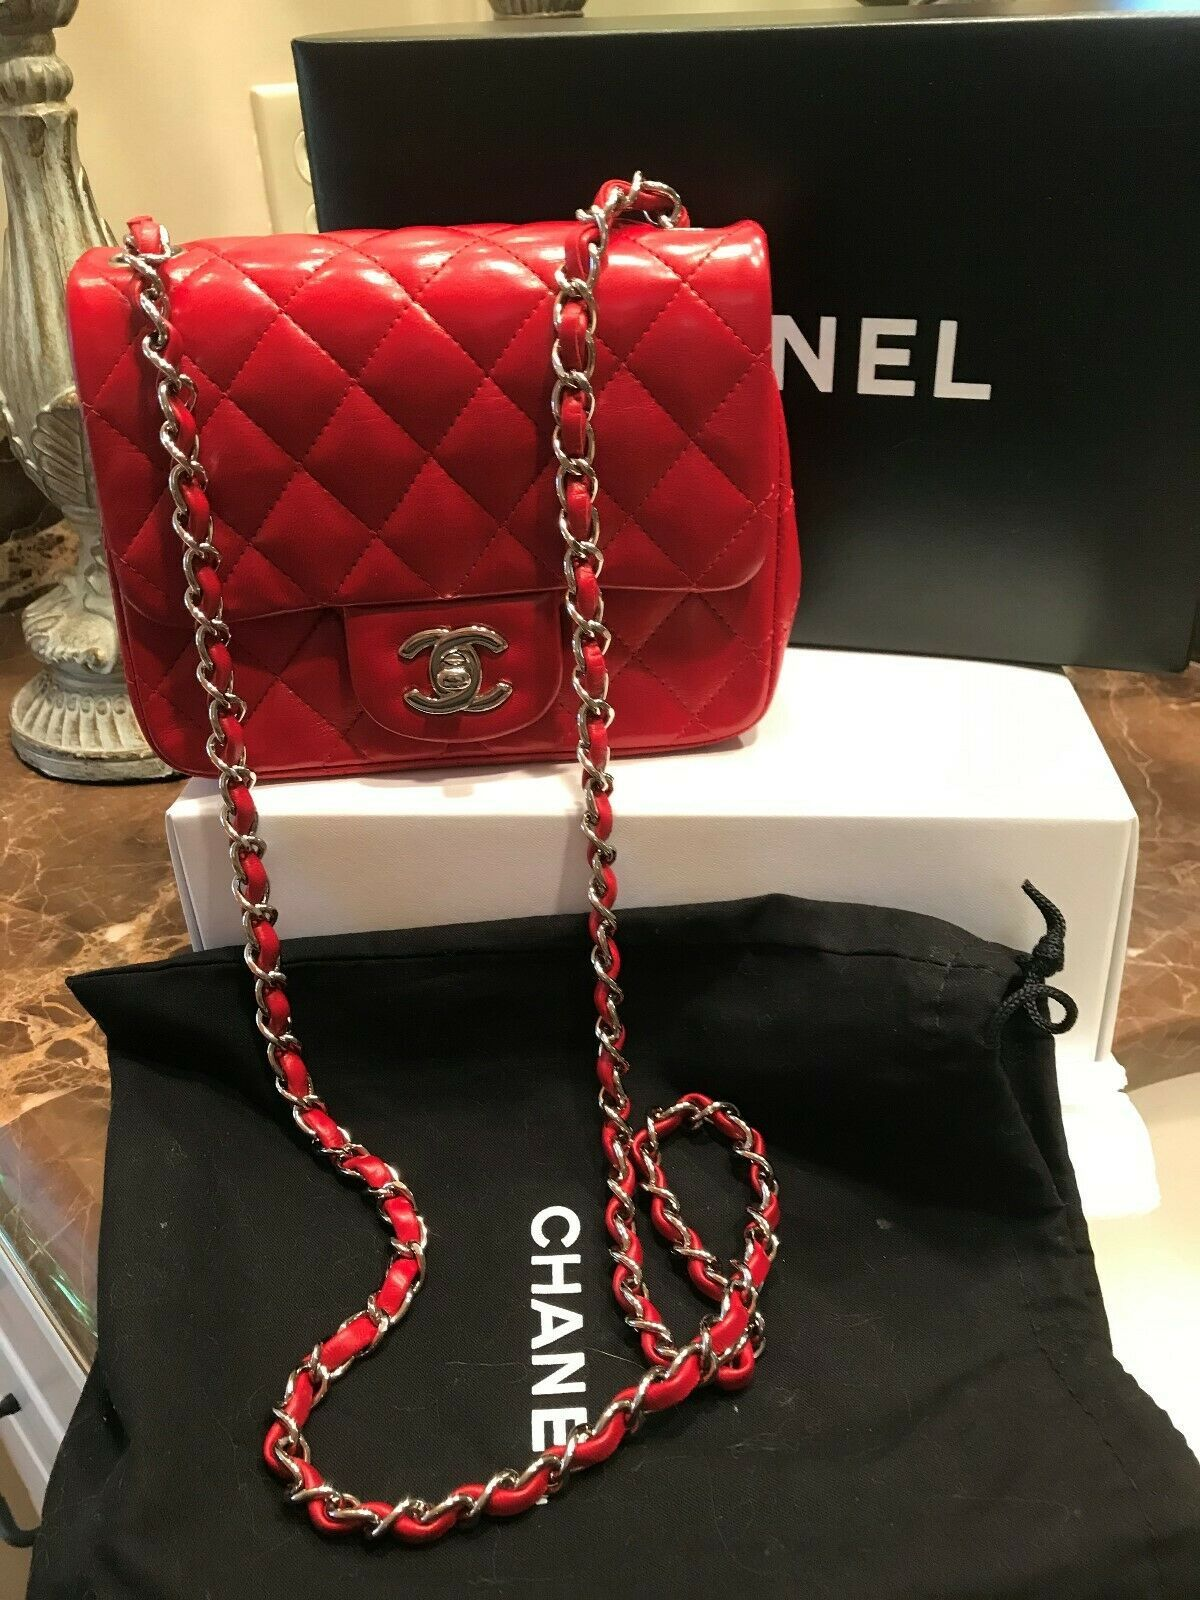 Chanel Mini Classic Flap Red Quilted Leather Bag silver